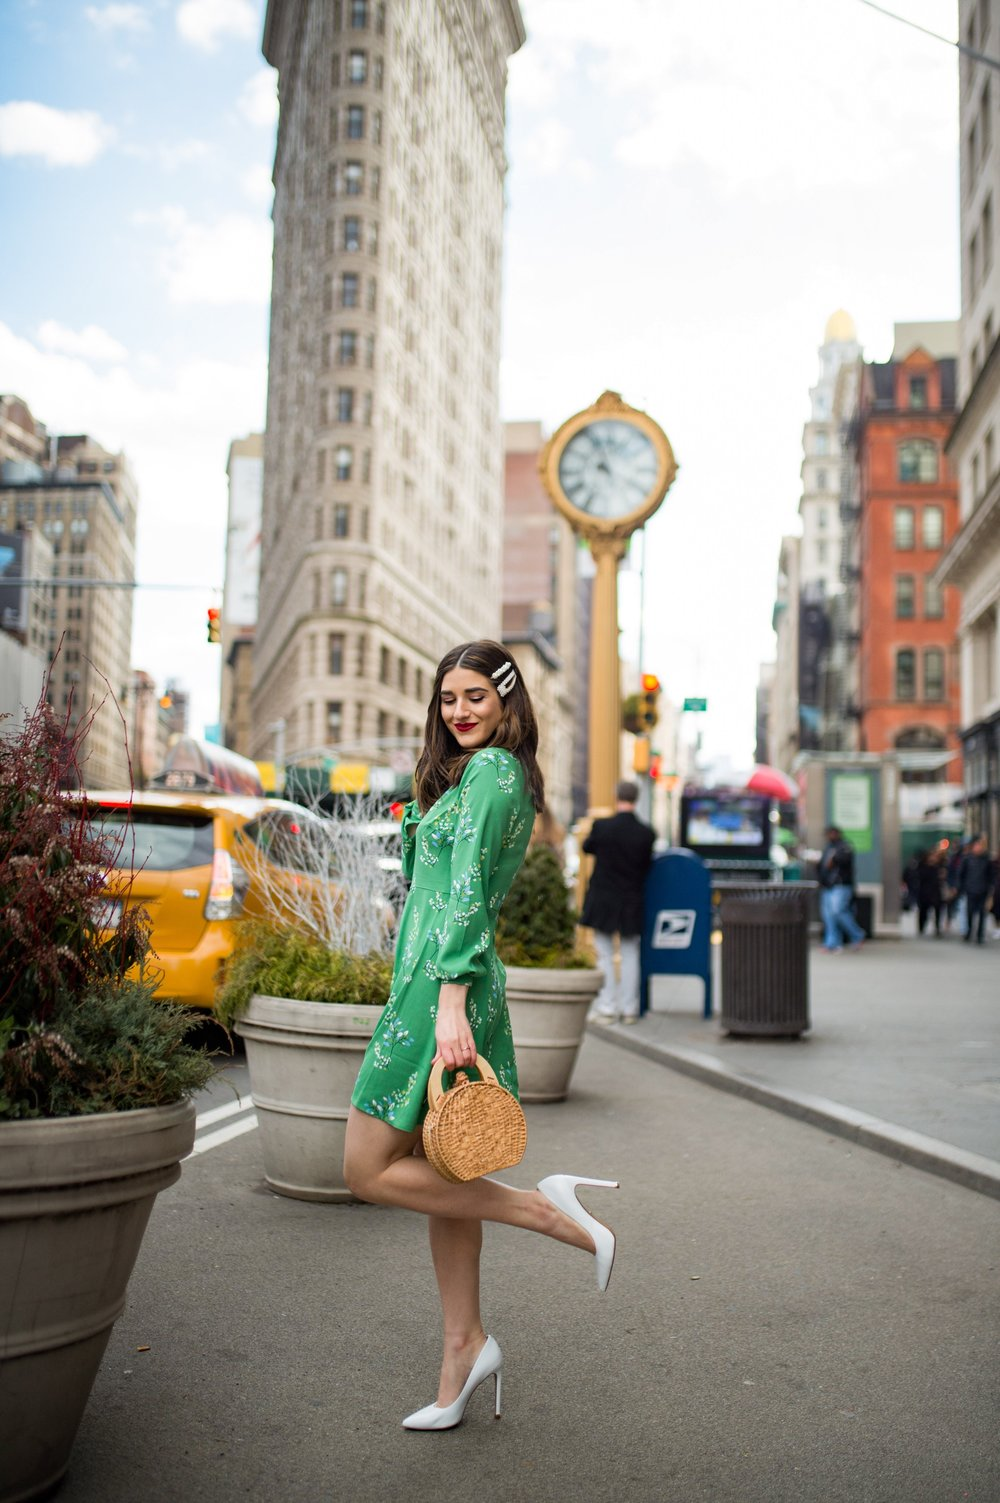 Styling Green For Spring LOFT Esther Santer Fashion Blog NYC Street Style Blogger Outfit OOTD Trendy Shopping White Heels Basket Circle Bag Florals Hair Accessories Pearl Clips Flatiron Photoshoot Inspo Inspiration Petite Dress Inclusive Sizing Bag .jpg